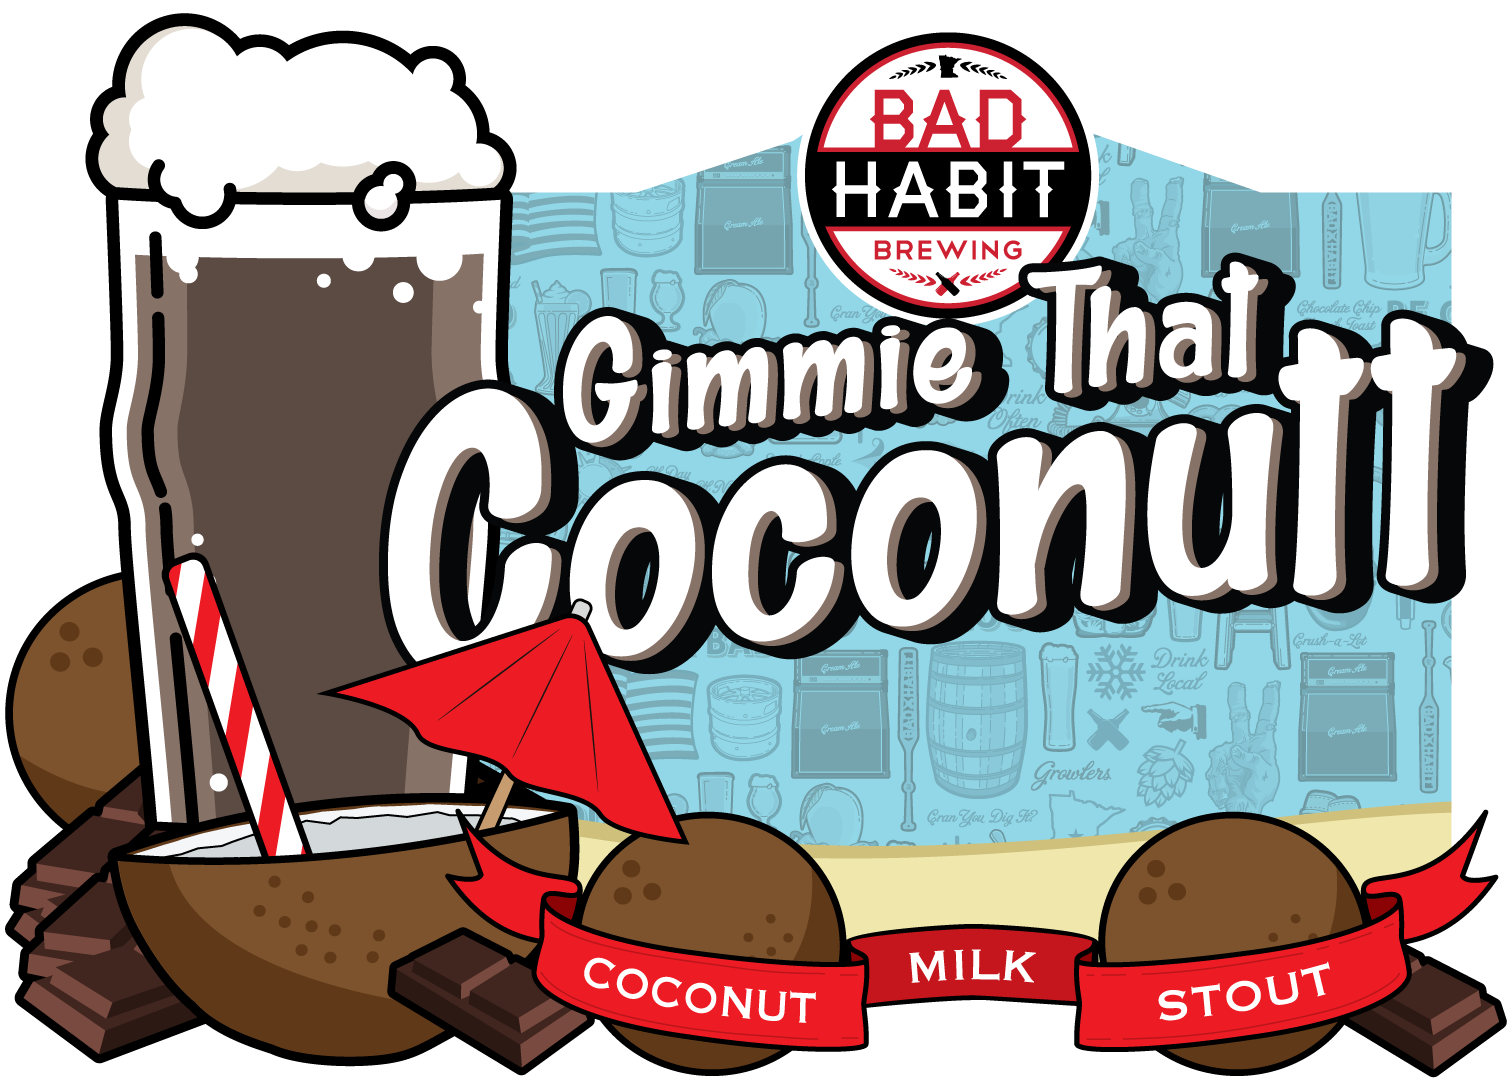 GIMMIE THATCOCONUTT - Coconut Milk Stout | 5.2% ABVWe brewed this one with 50lbs of sweet coconut and lactose for a truly tropical taste. You'll want to drink one down by the beach mon!